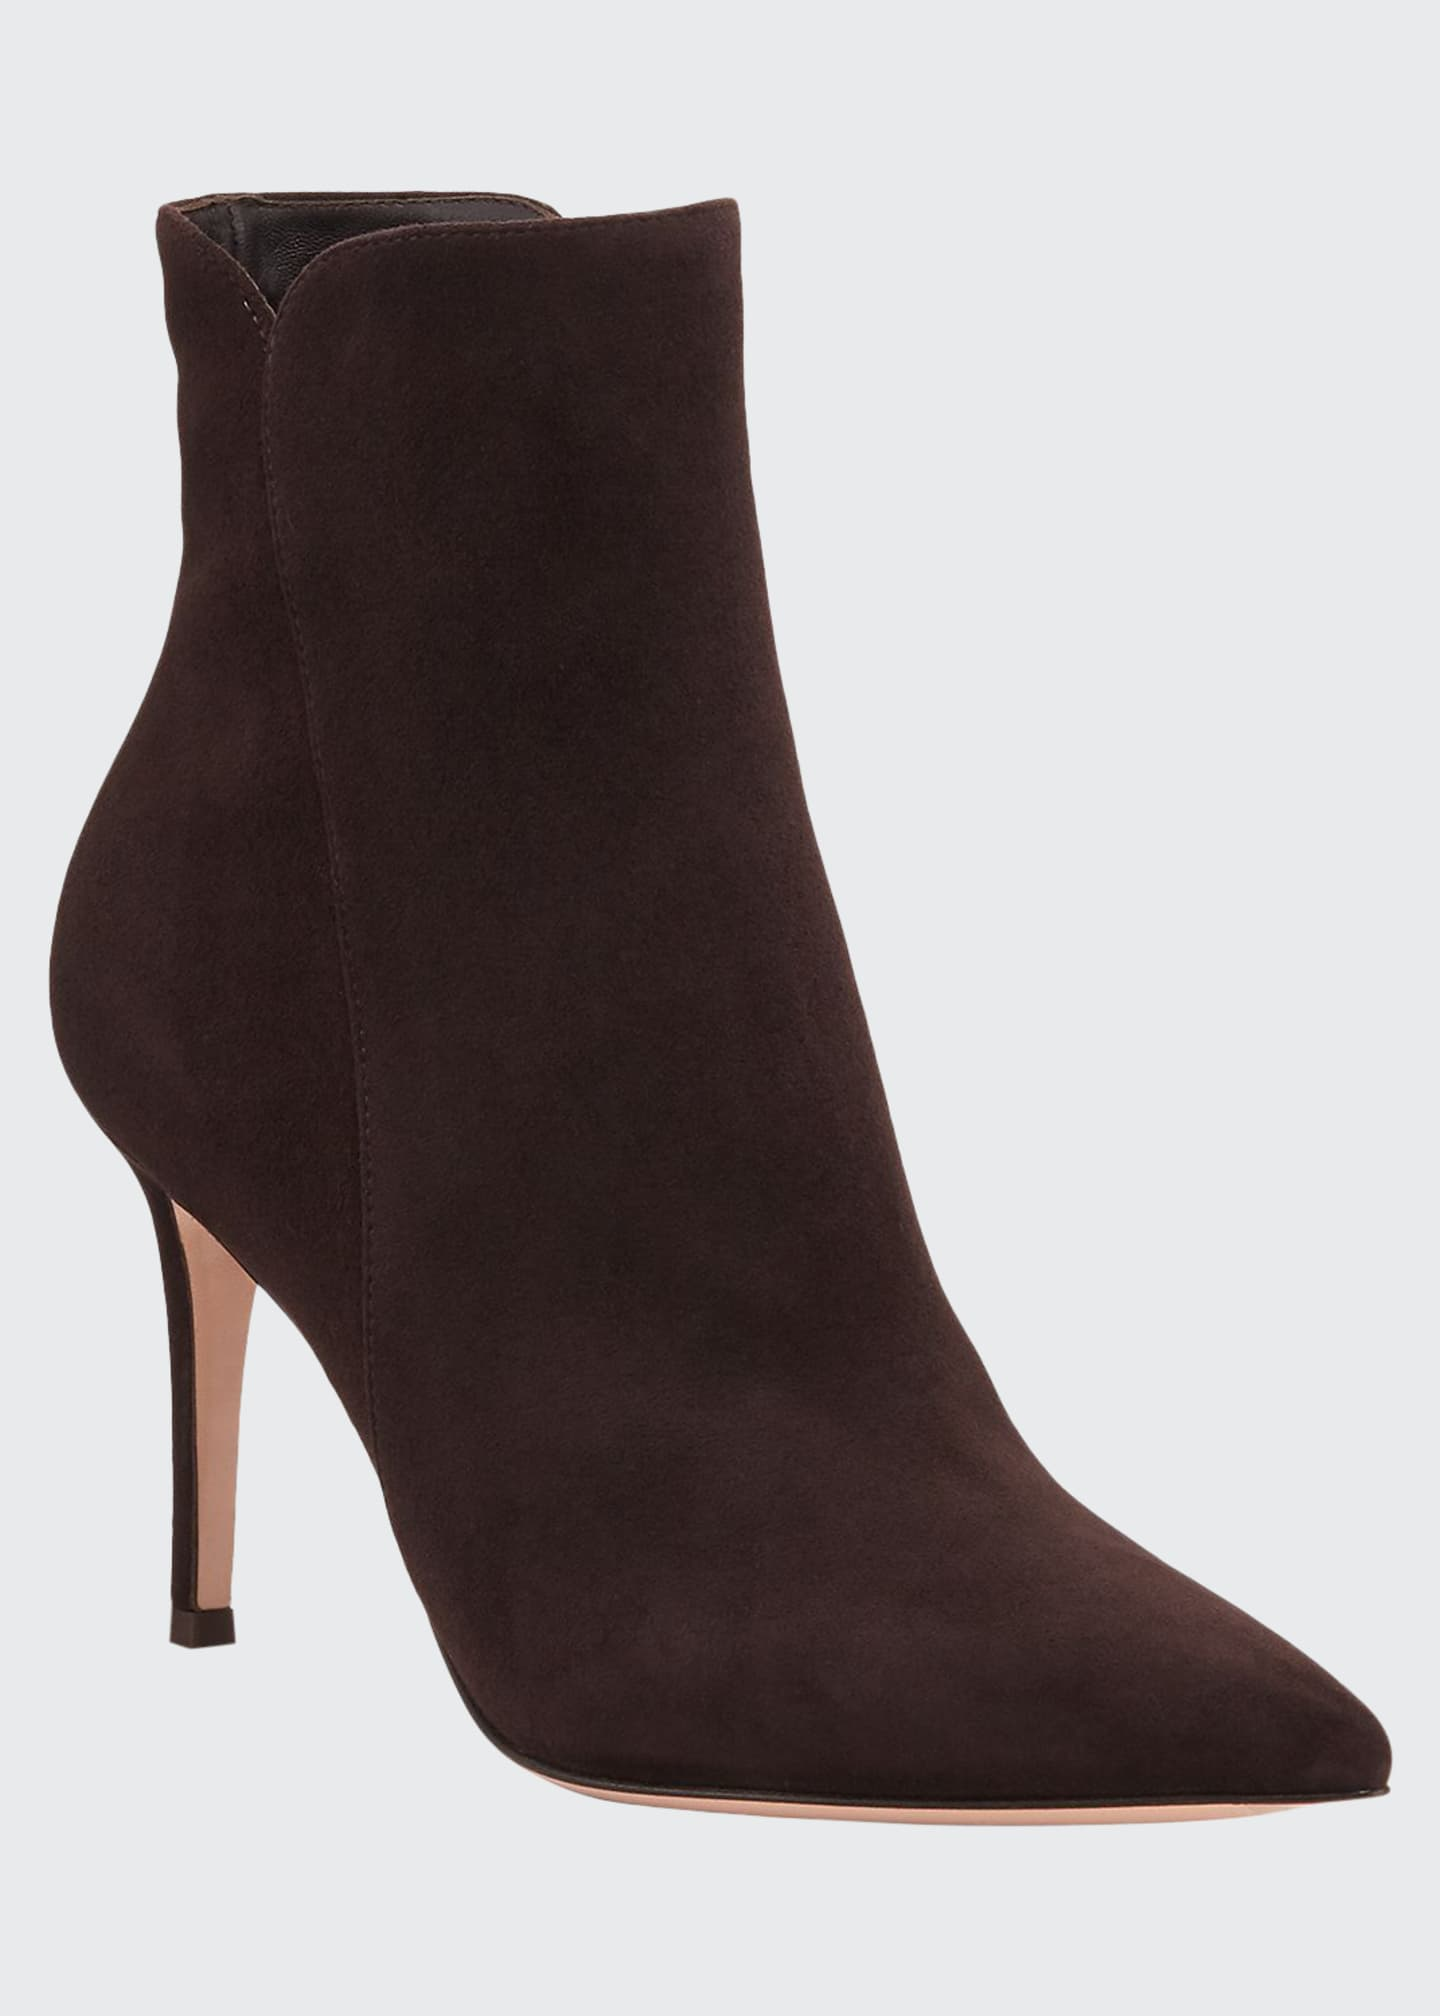 Gianvito Rossi Levy Suede 85mm Point-Toe Booties